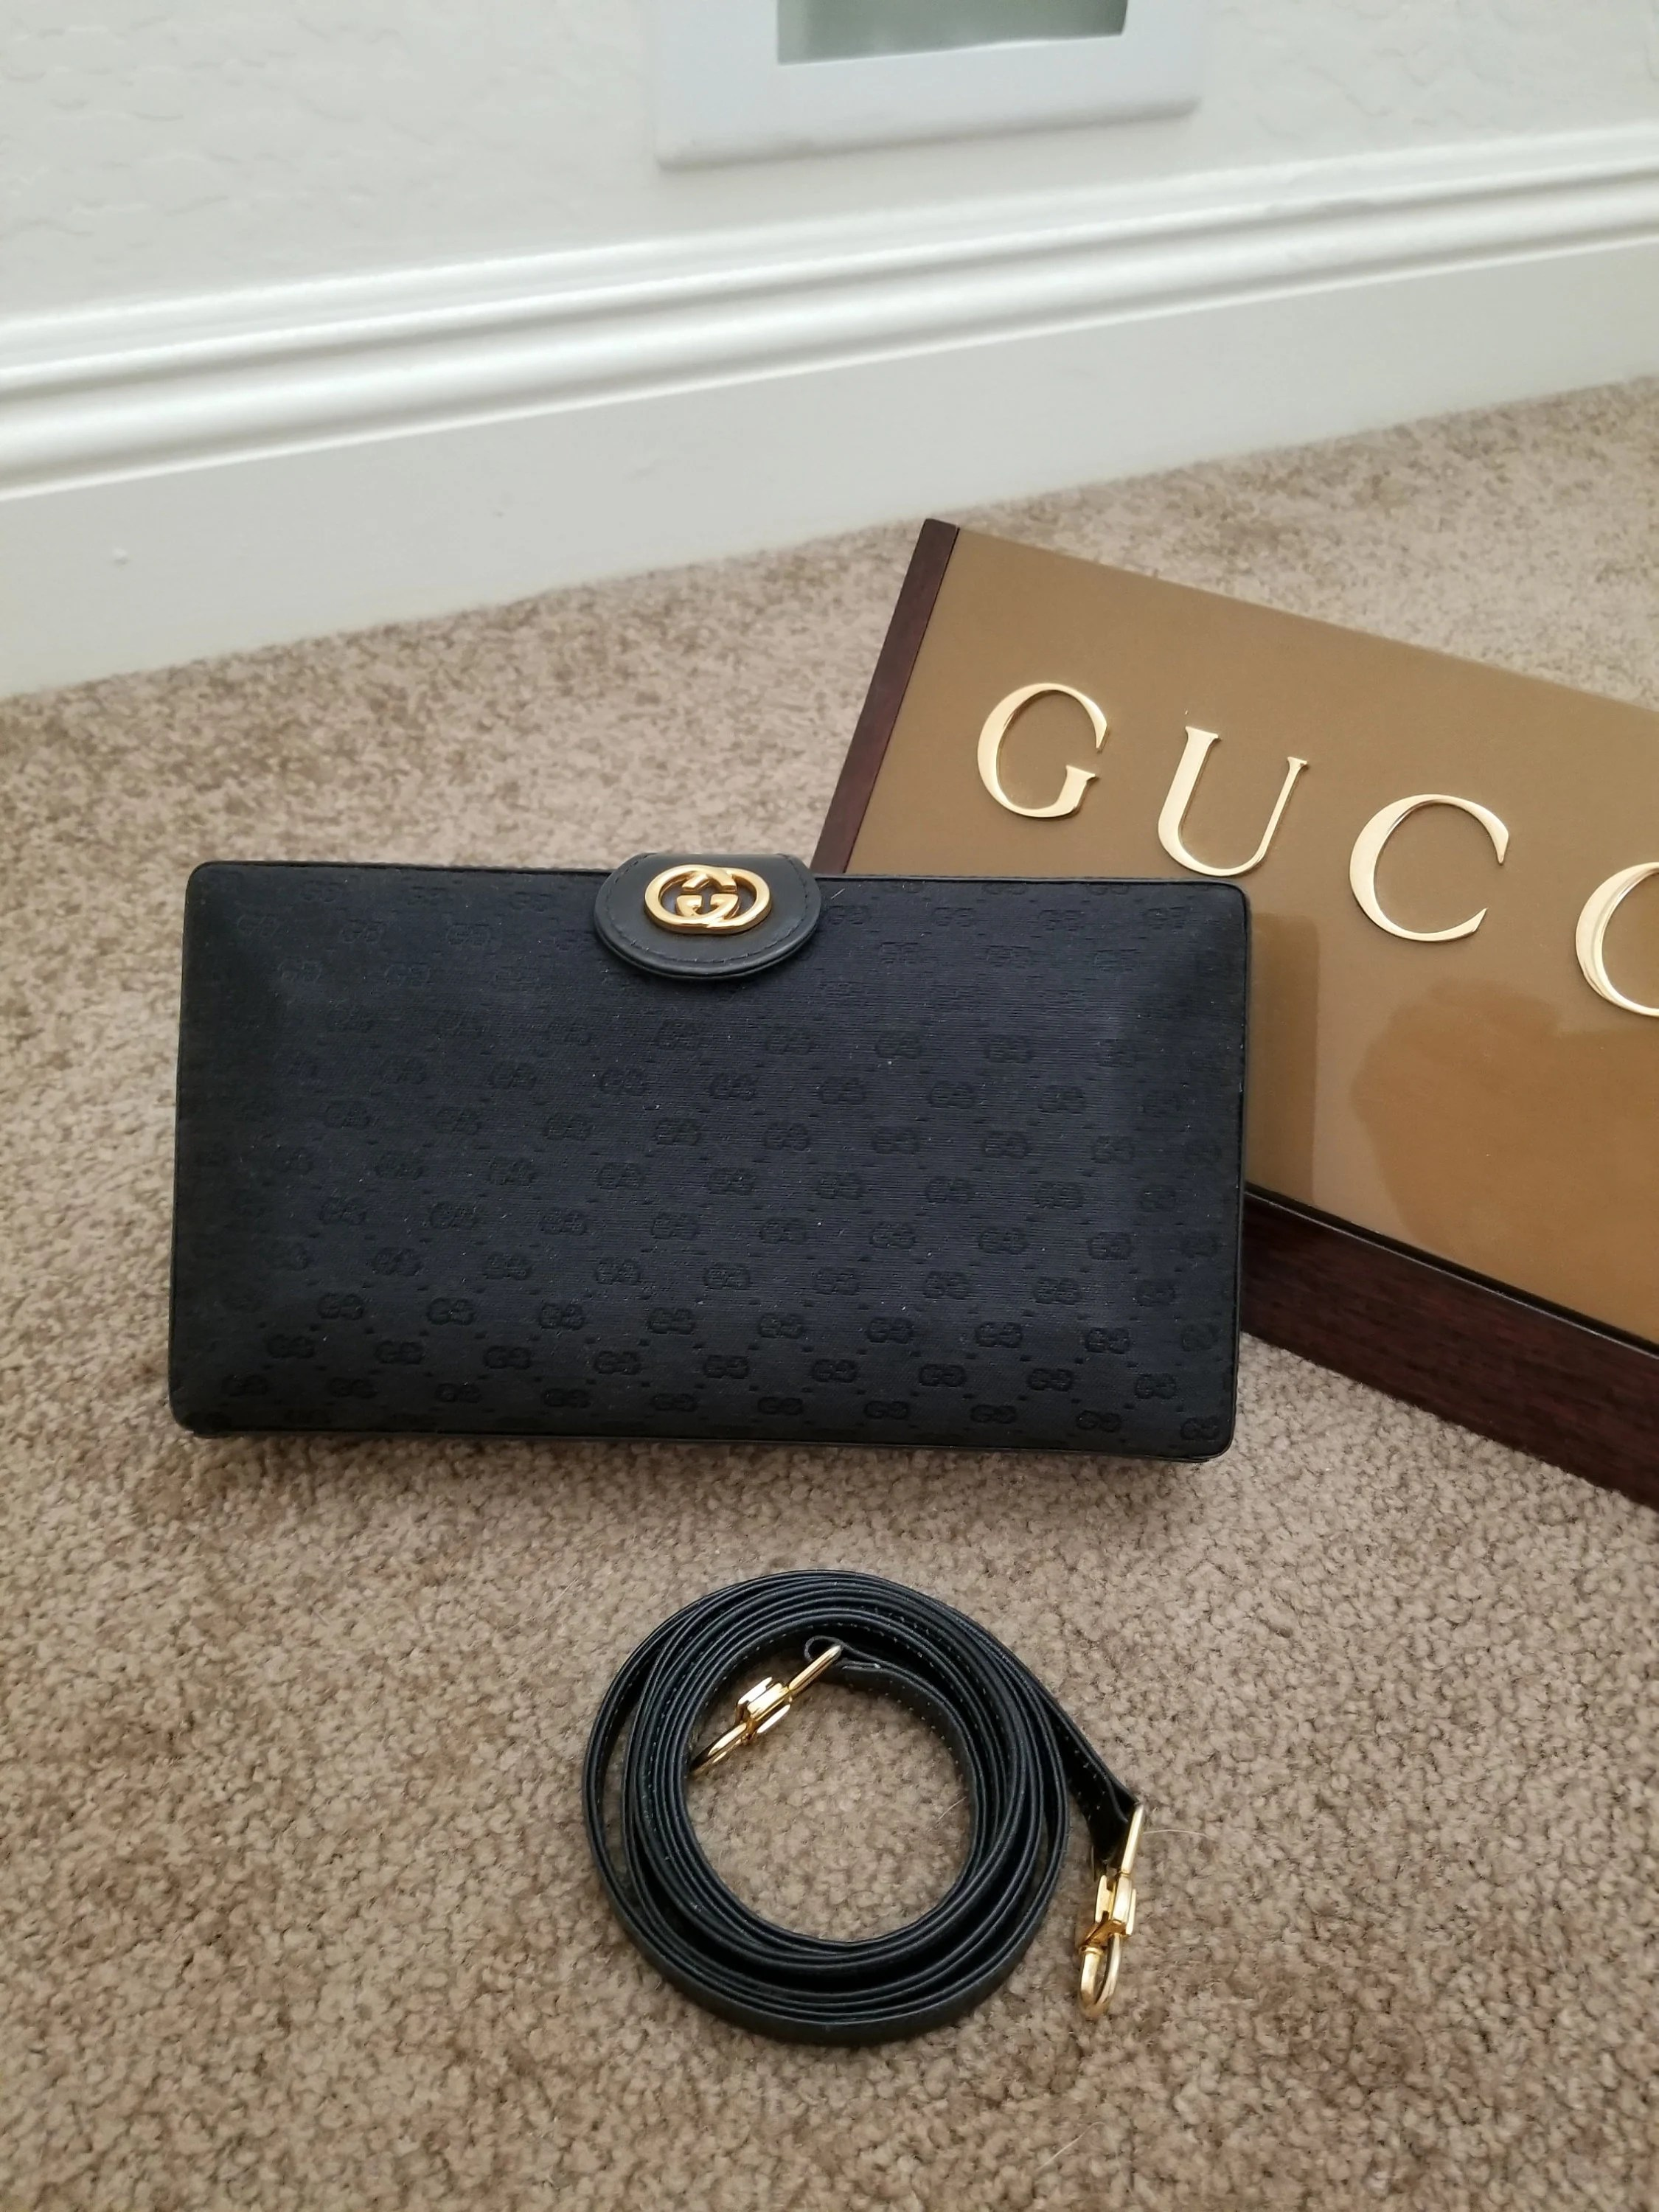 Etsy Vintage Gucci Vintage Gucci Micro Gg Black Convertible Clutch Shoulder Bag Or Cross Body